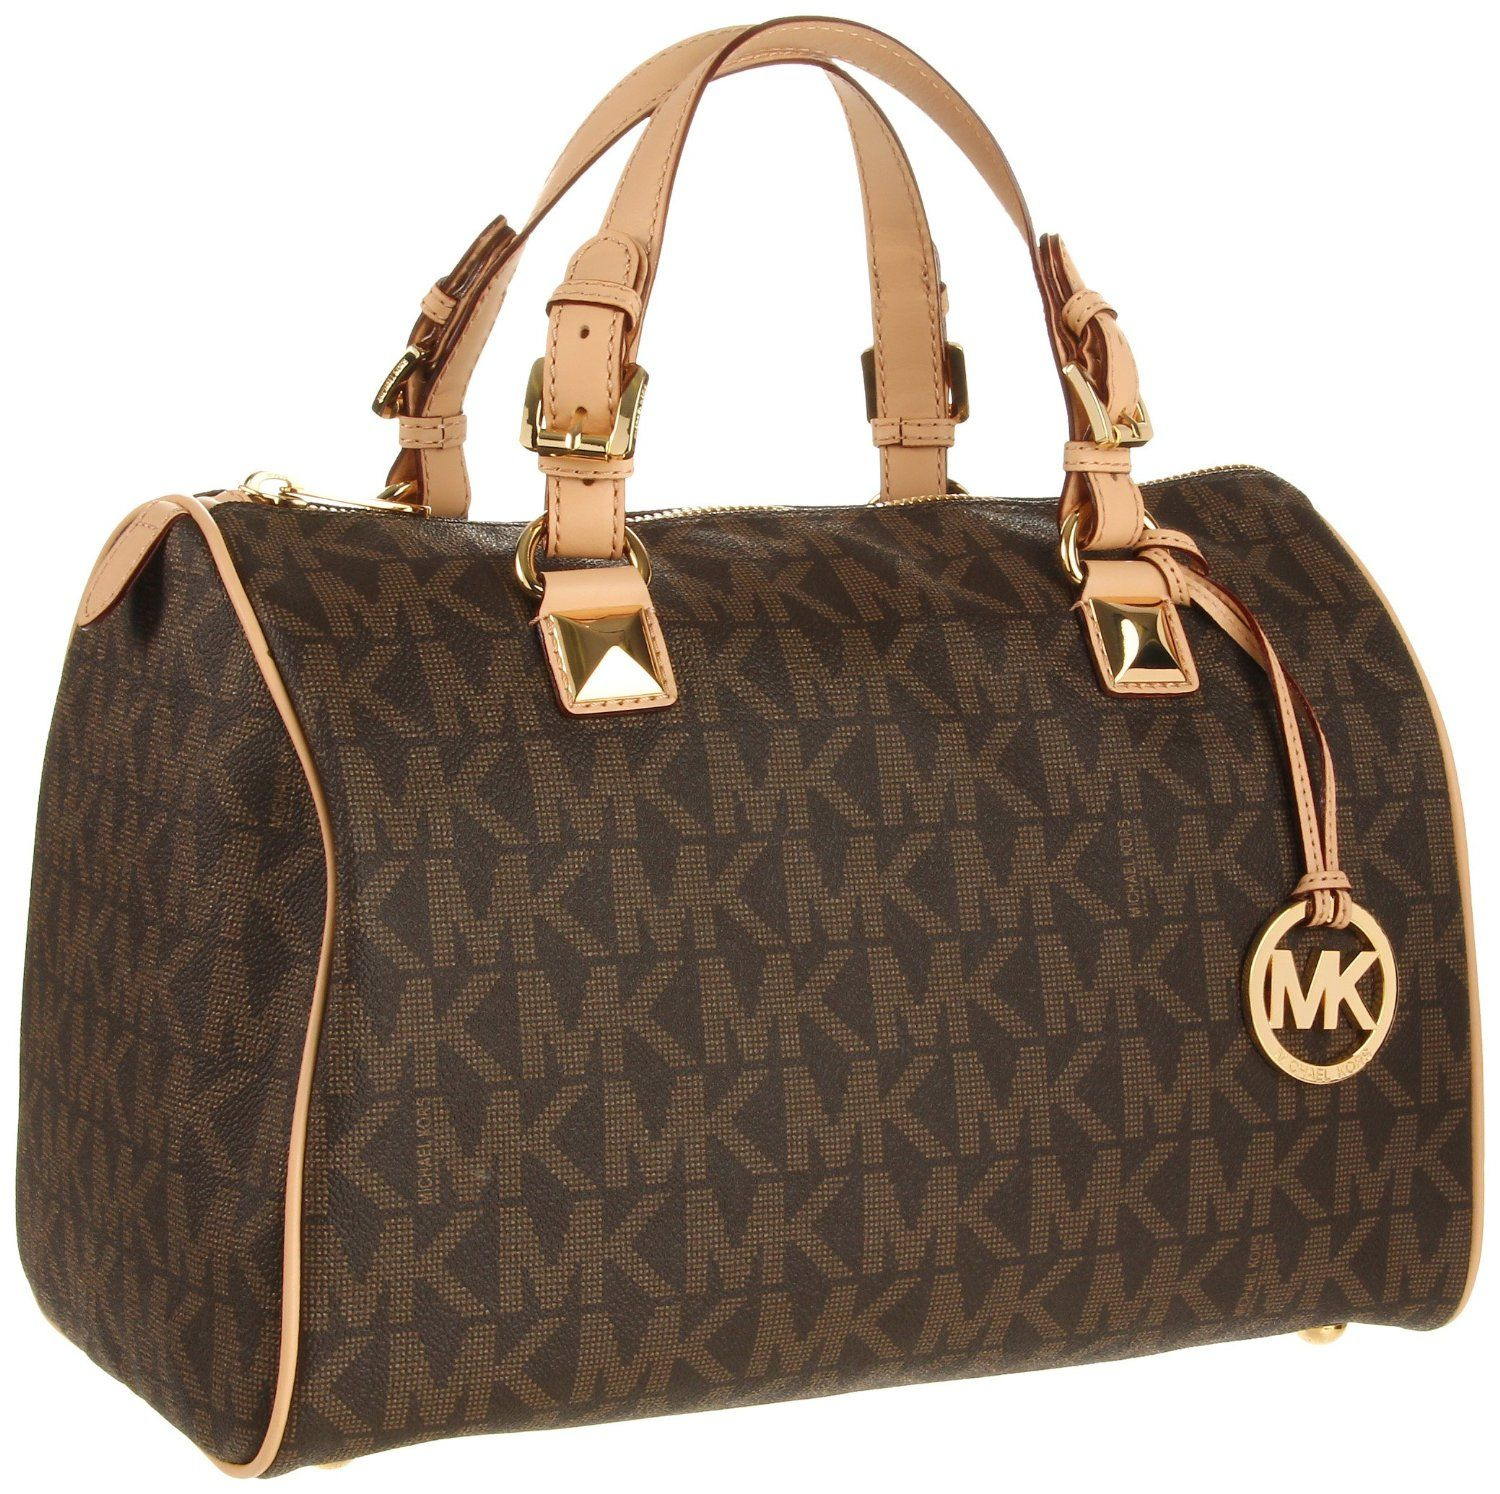 MICHAEL KORS Grayson Large Logo Satchel Womens Handbag. http ...